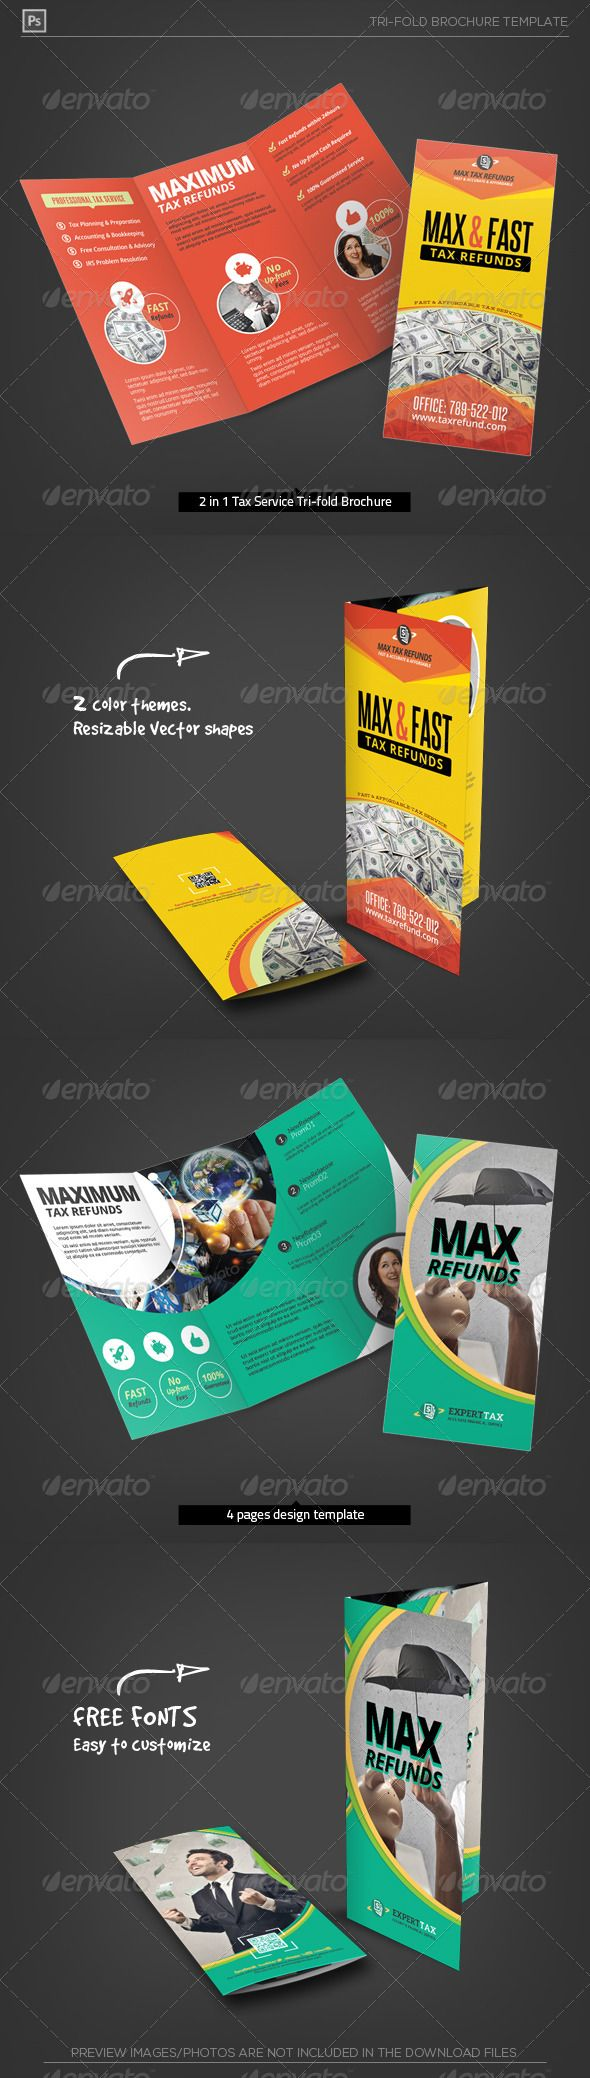 78 Best images about Print Templates on Pinterest   Adobe ...